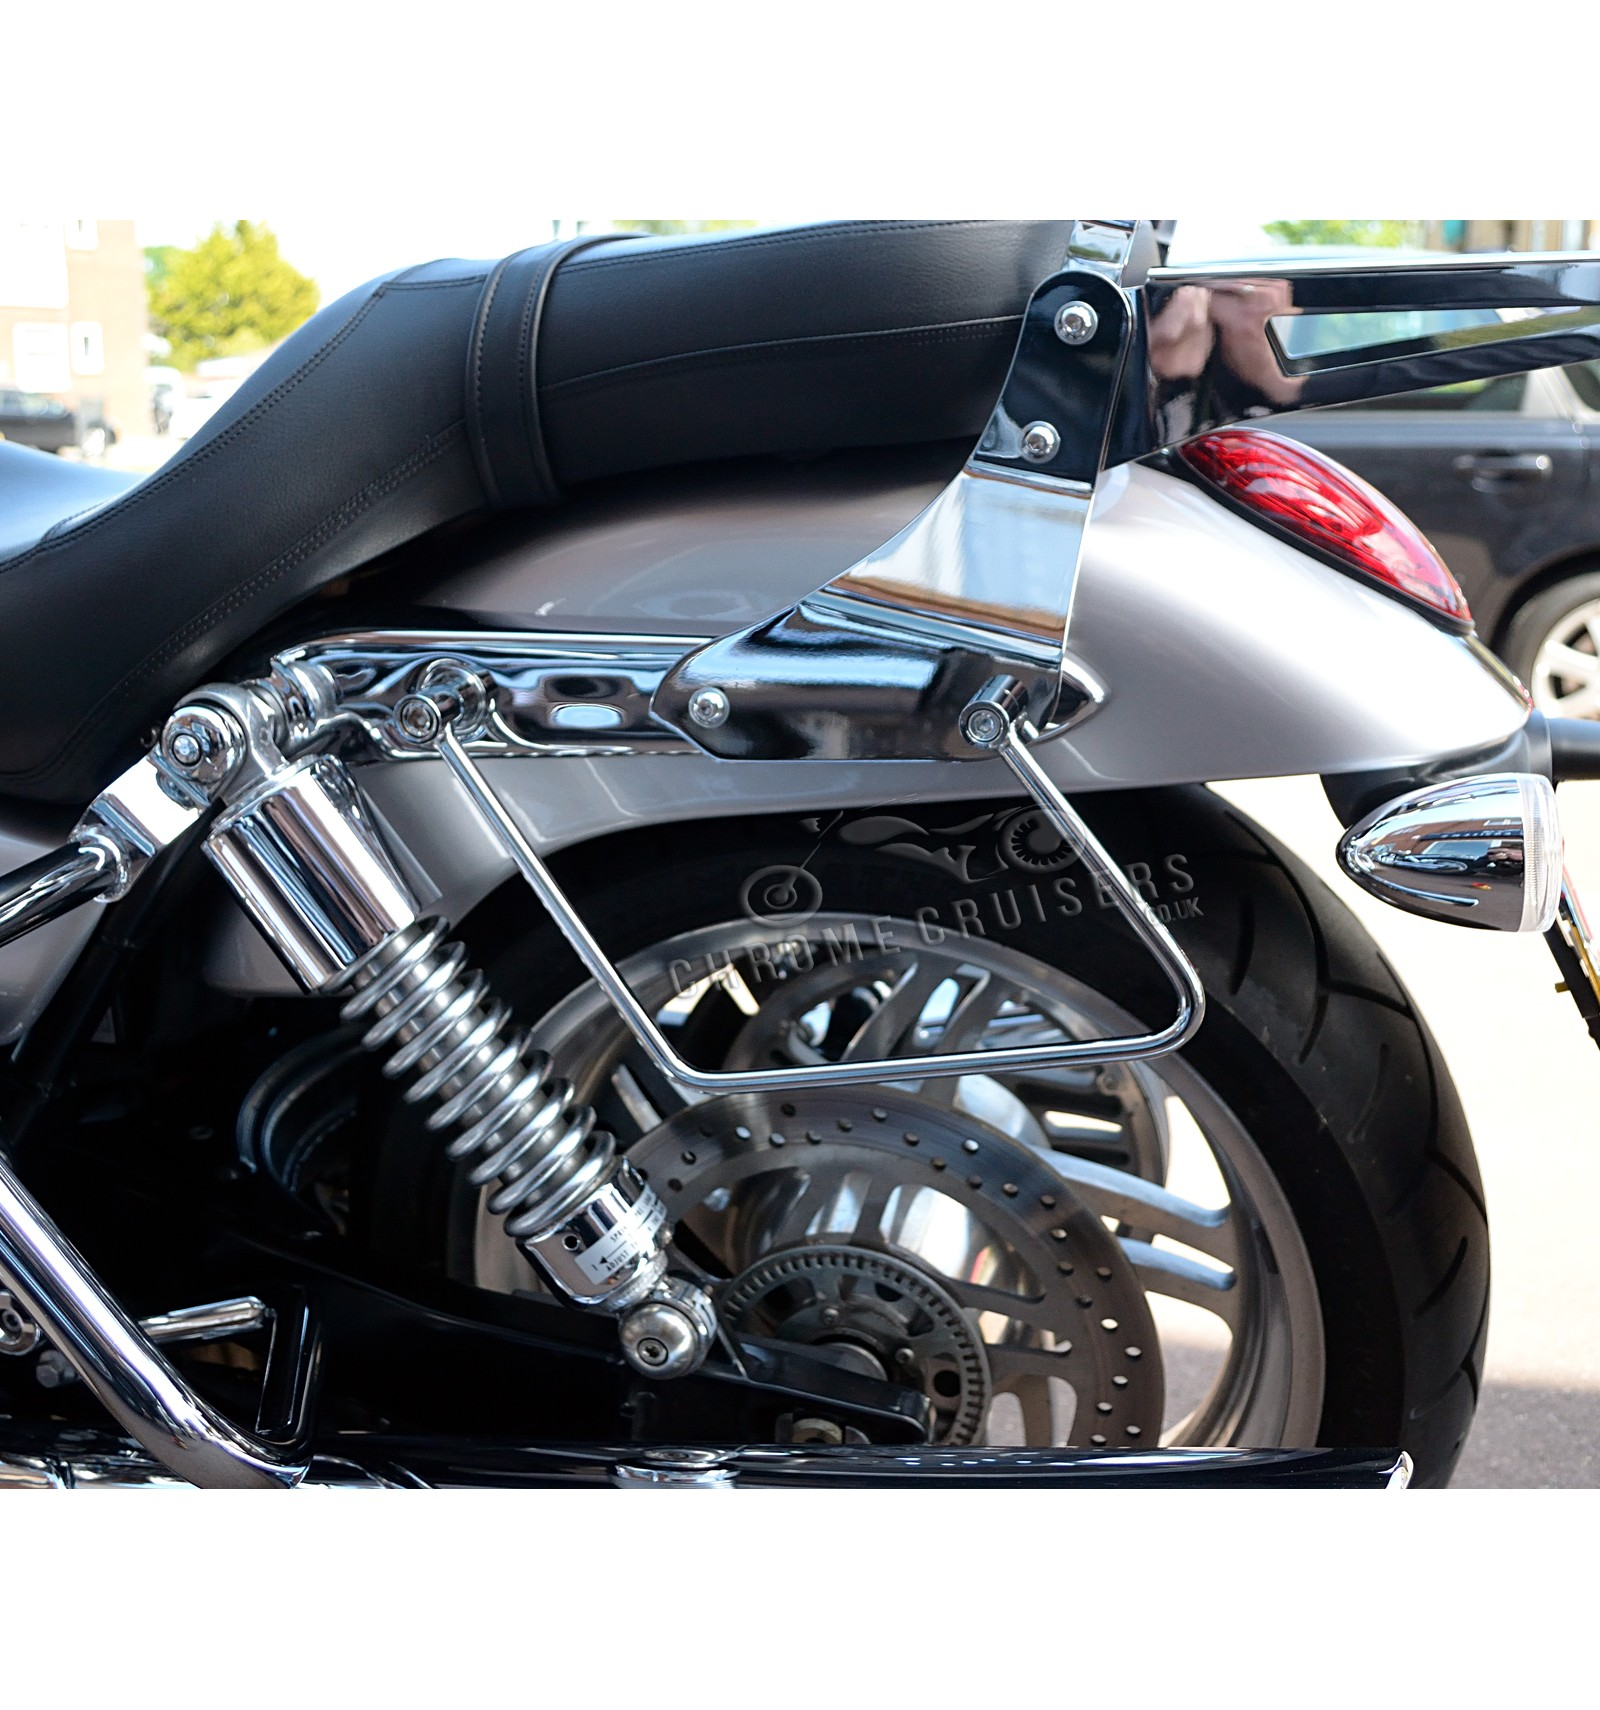 triumph thunderbird storm 1700 saddlebag support brackets chrome cruisers. Black Bedroom Furniture Sets. Home Design Ideas